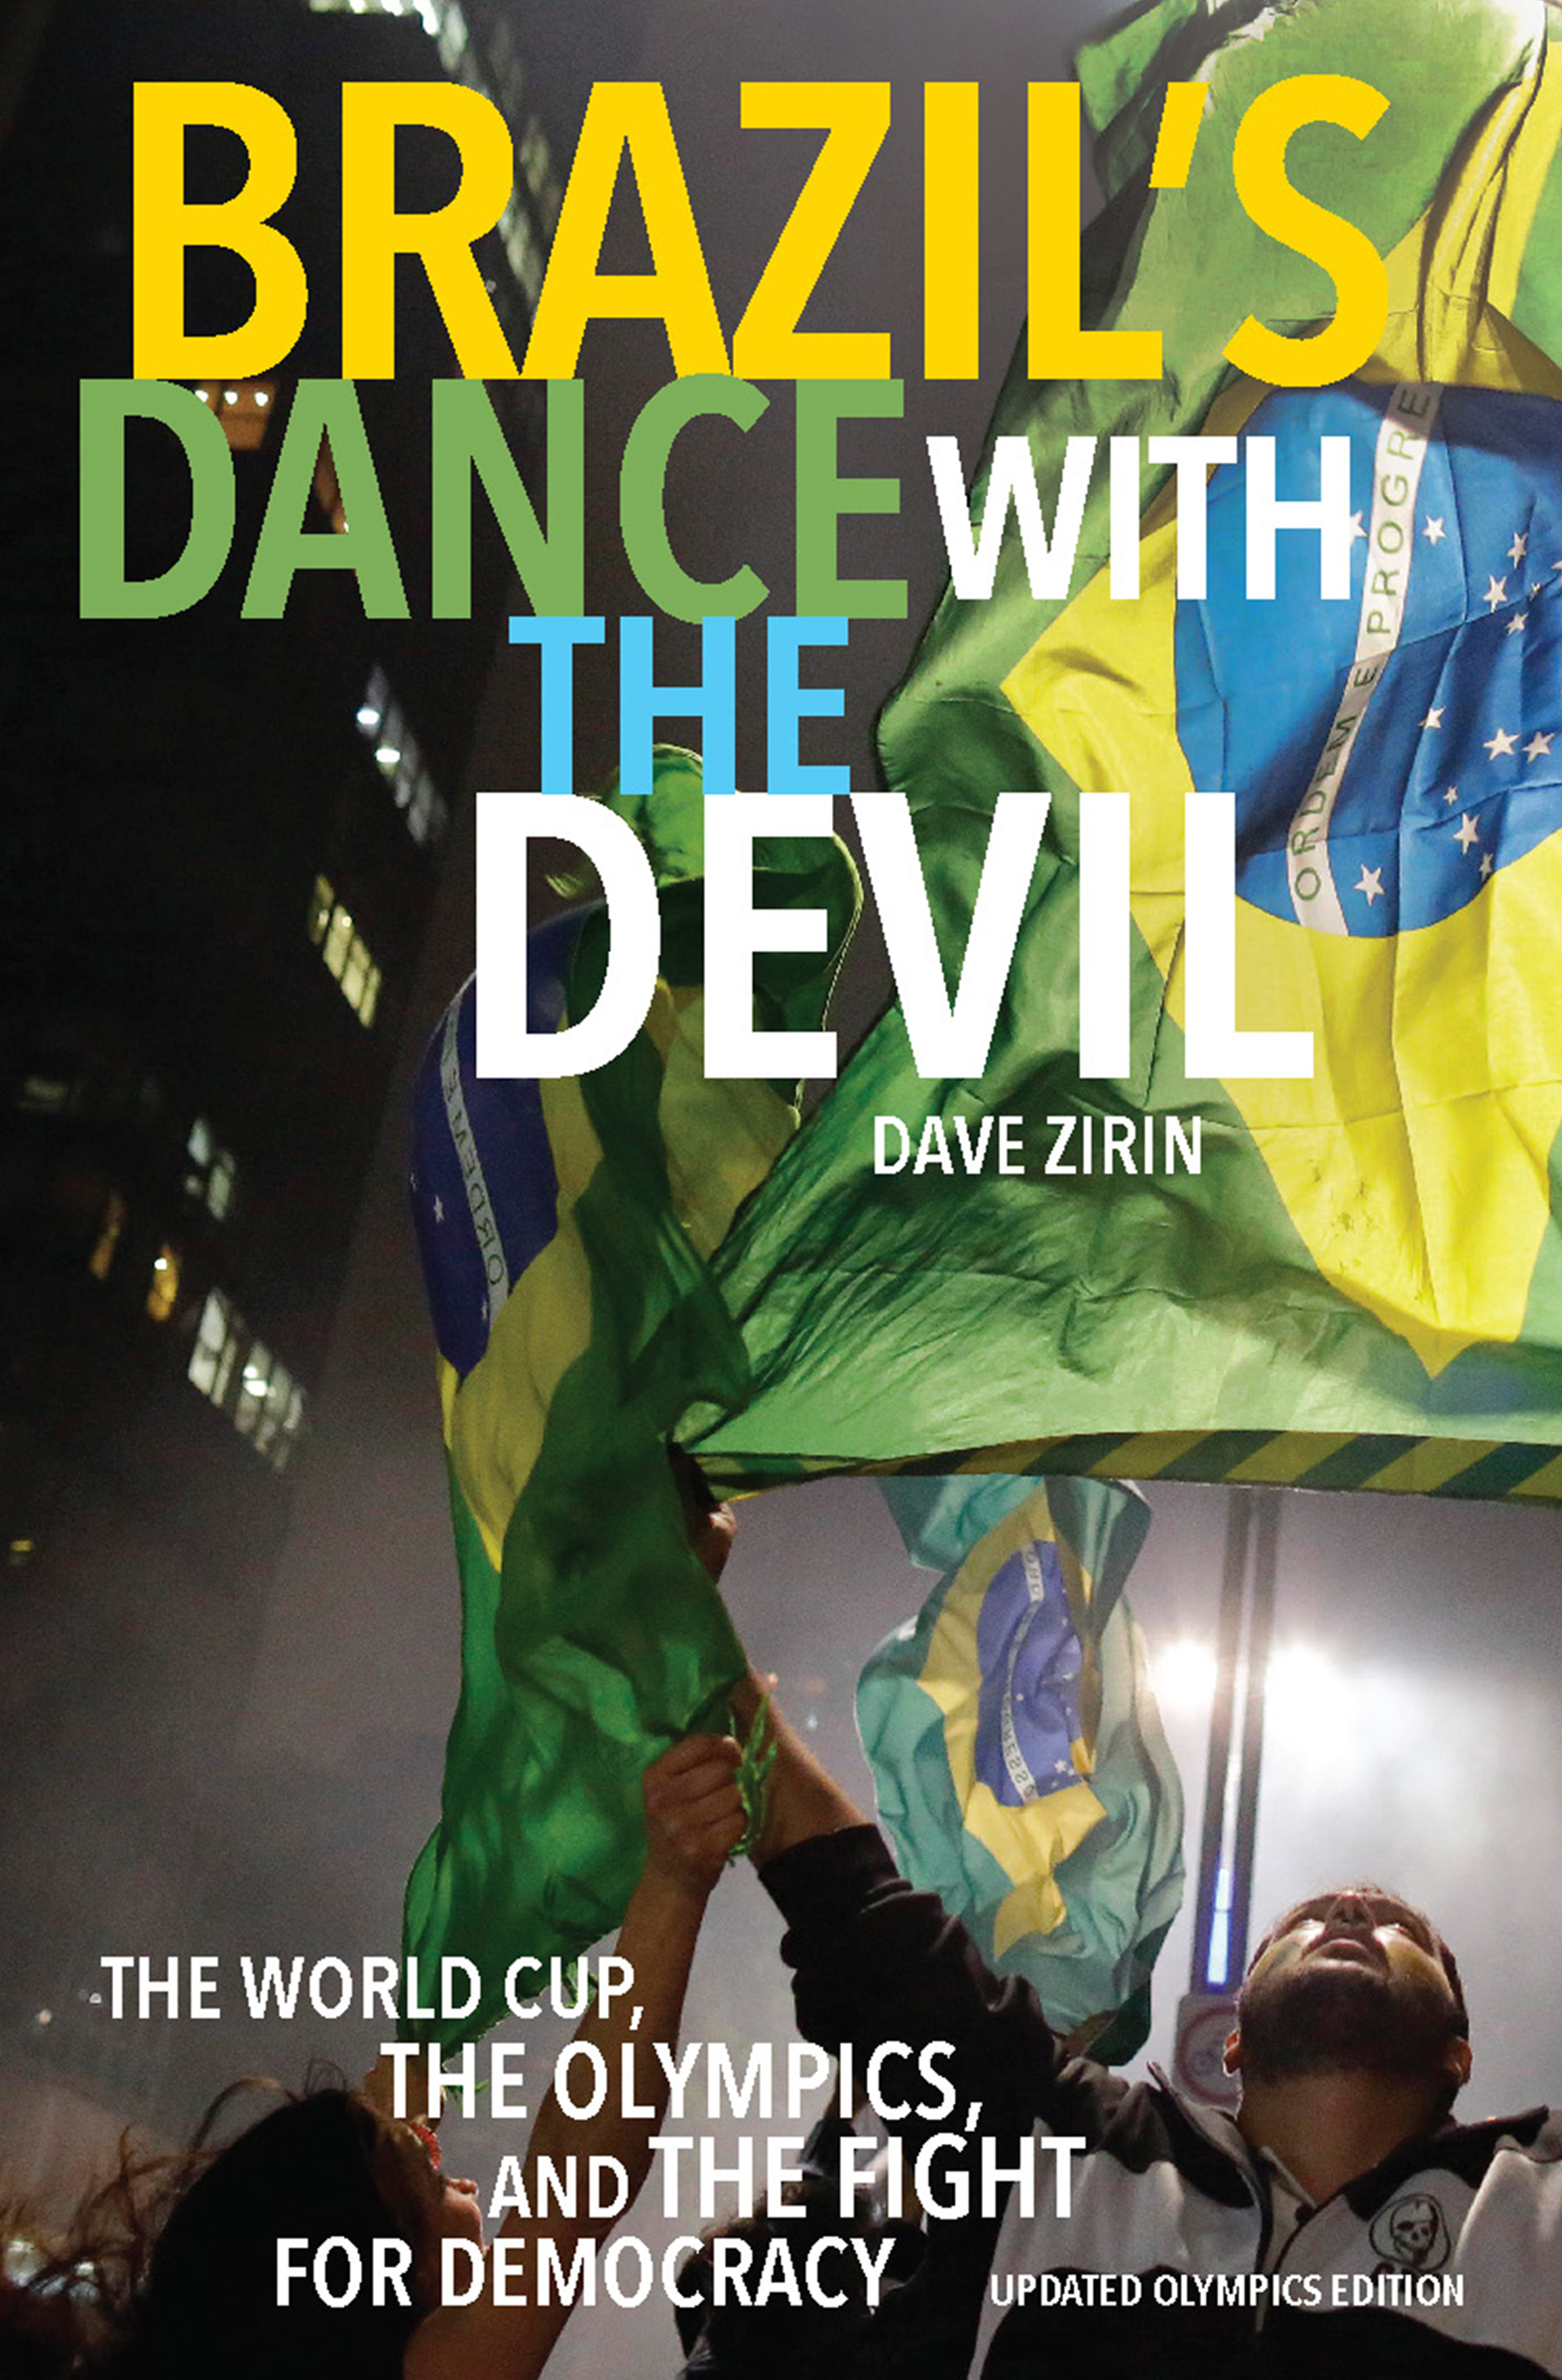 Brazil's Dance with the Devil The World Cup, The Olympics, and the Struggle for Democracy